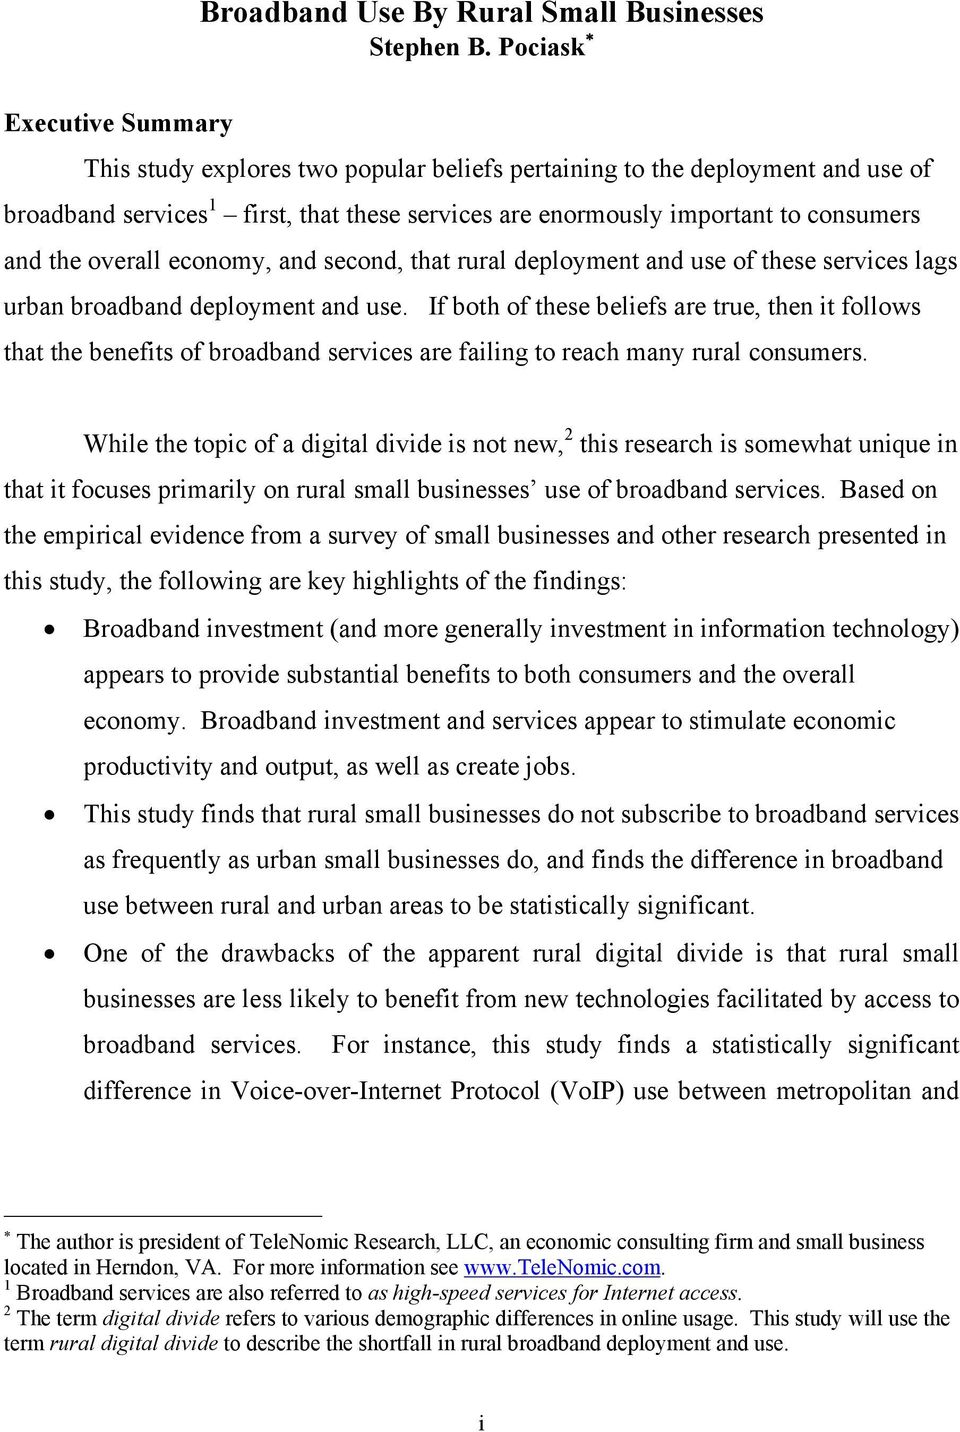 overall economy, and second, that rural deployment and use of these services lags urban broadband deployment and use.